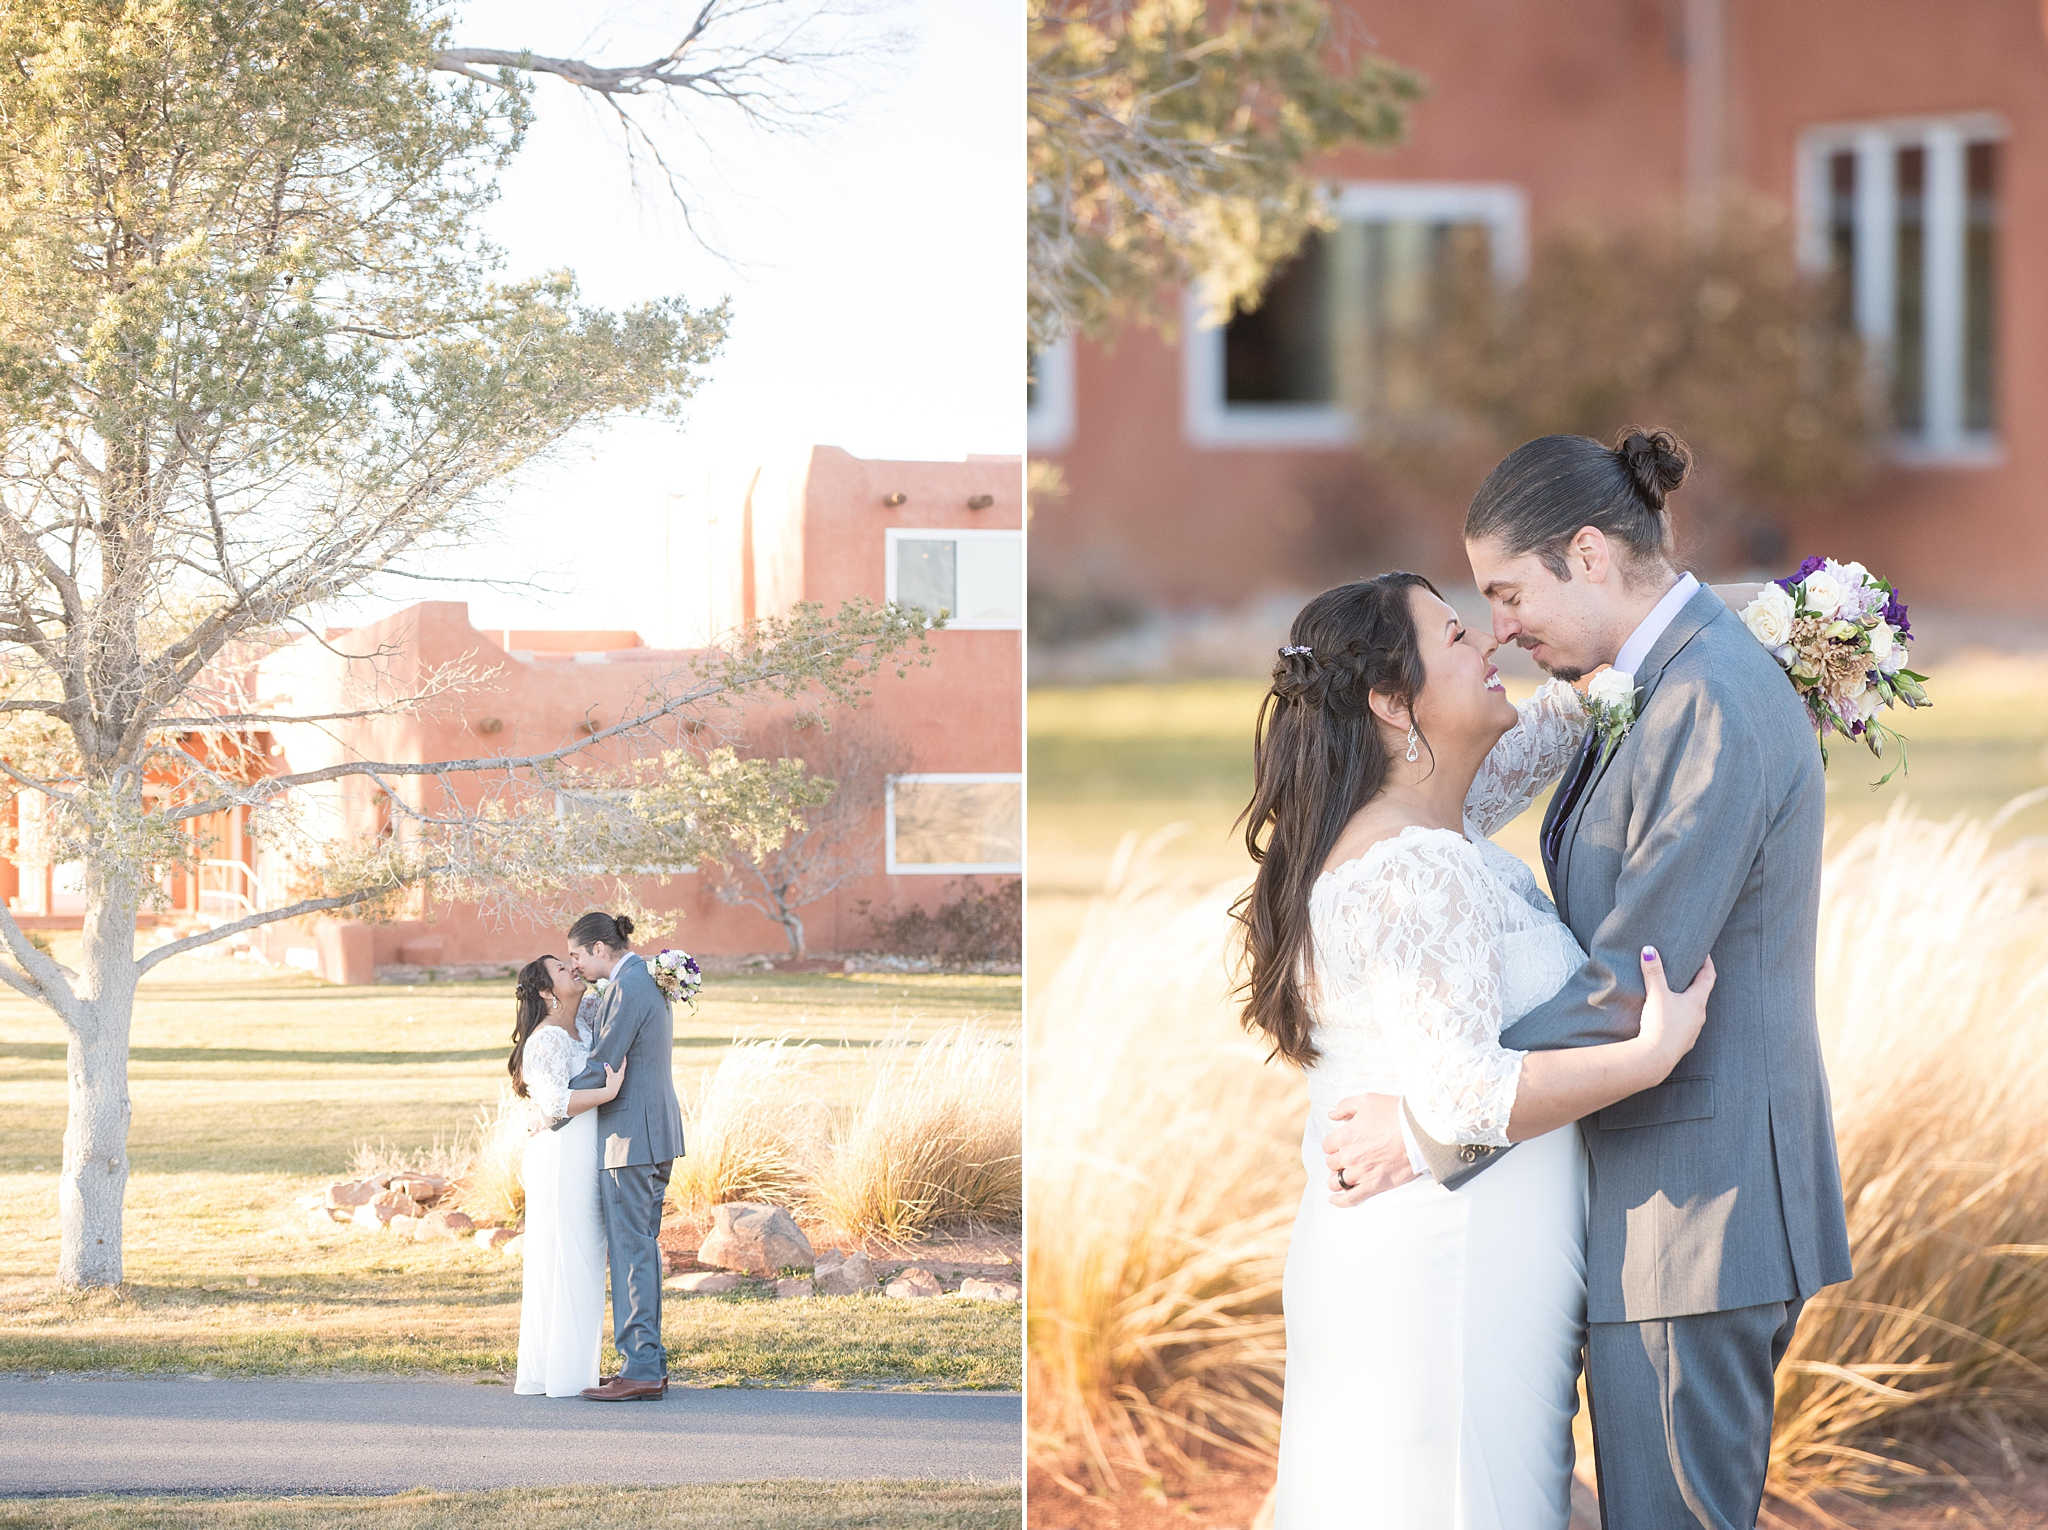 kaylakittsphotography-travis-michelle-prairie-star-albuquerque-wedding-photographer_0019.jpg